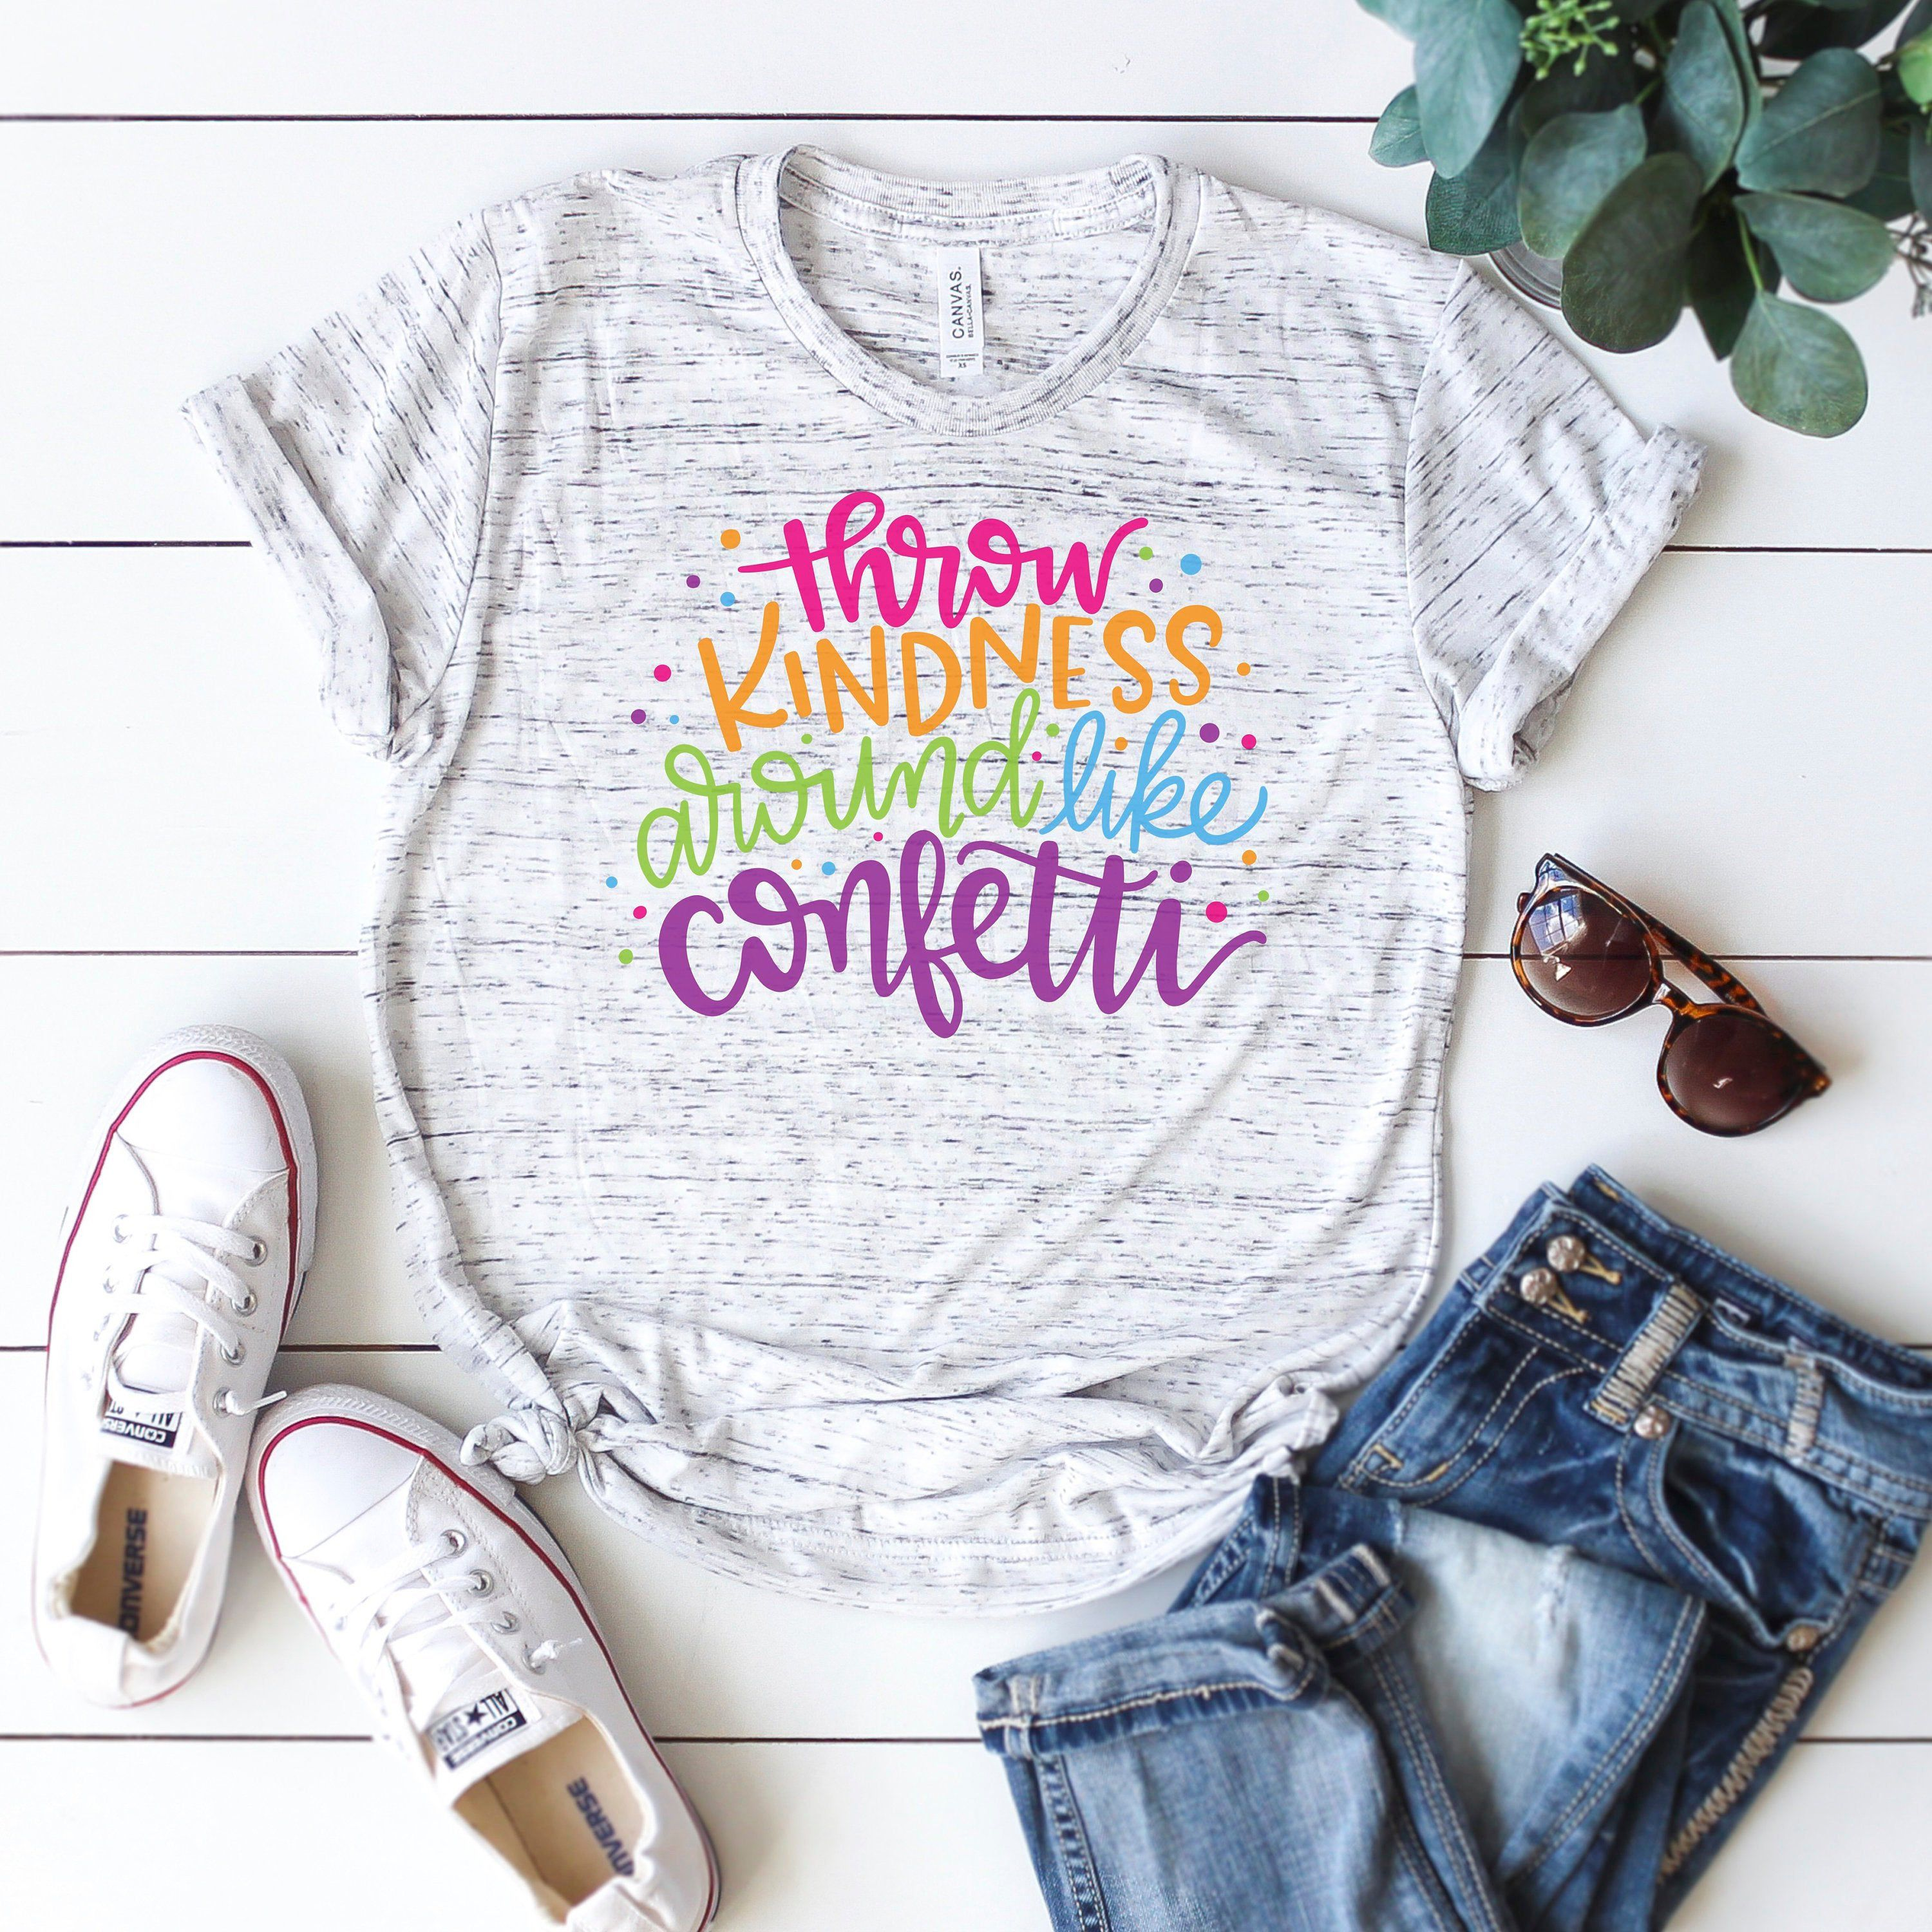 Throw Kindness Around Like Confetti, Kindness Quote, Choose Kindness Shirt, Teacher Shirt, Anti Bullying Shirts, Spread Kindness, Be Kind